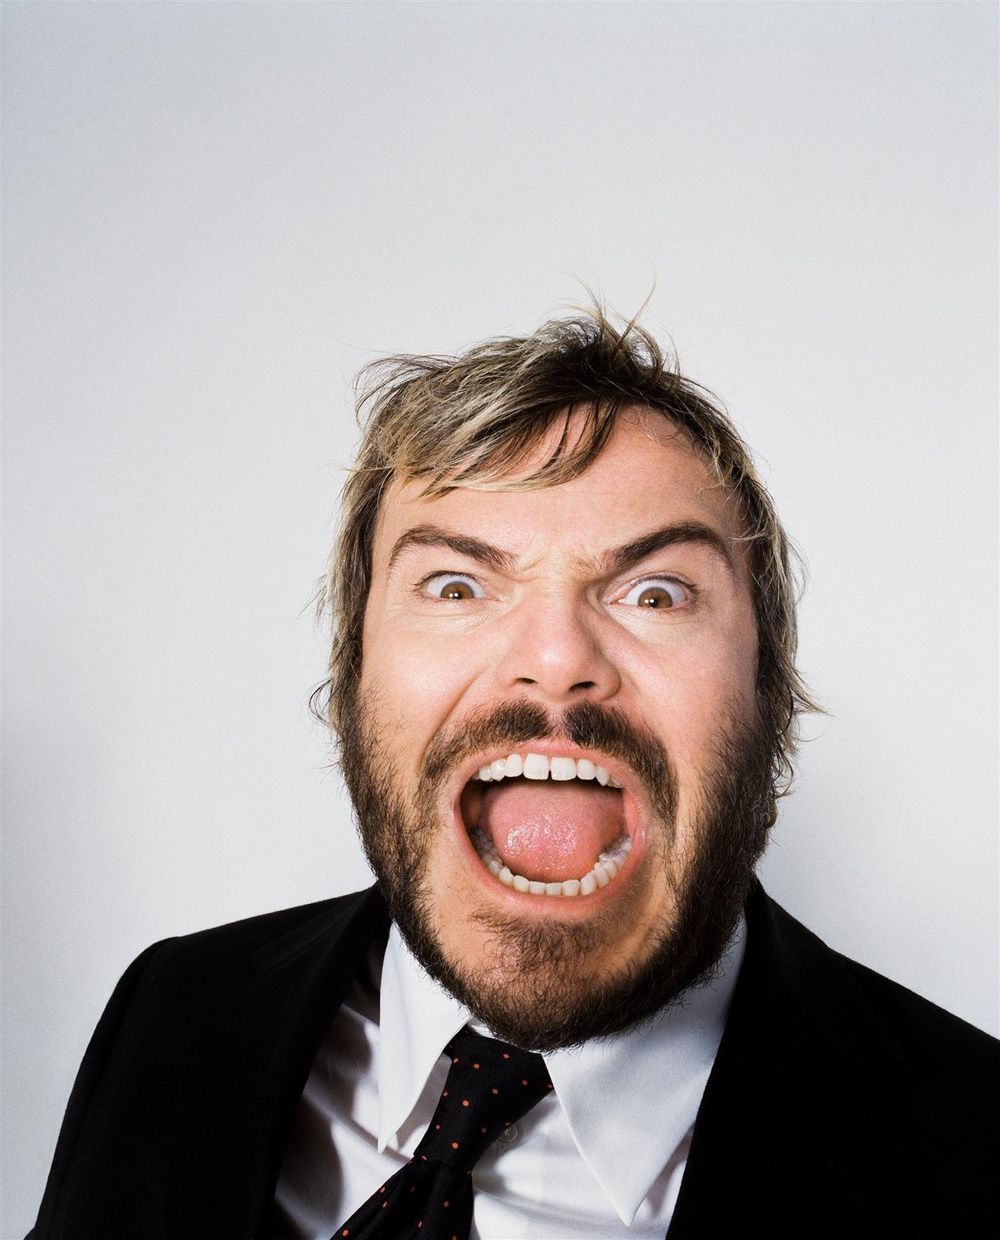 jack-black-in-talks-to-star-in-goosebumps-movie-header.jpg